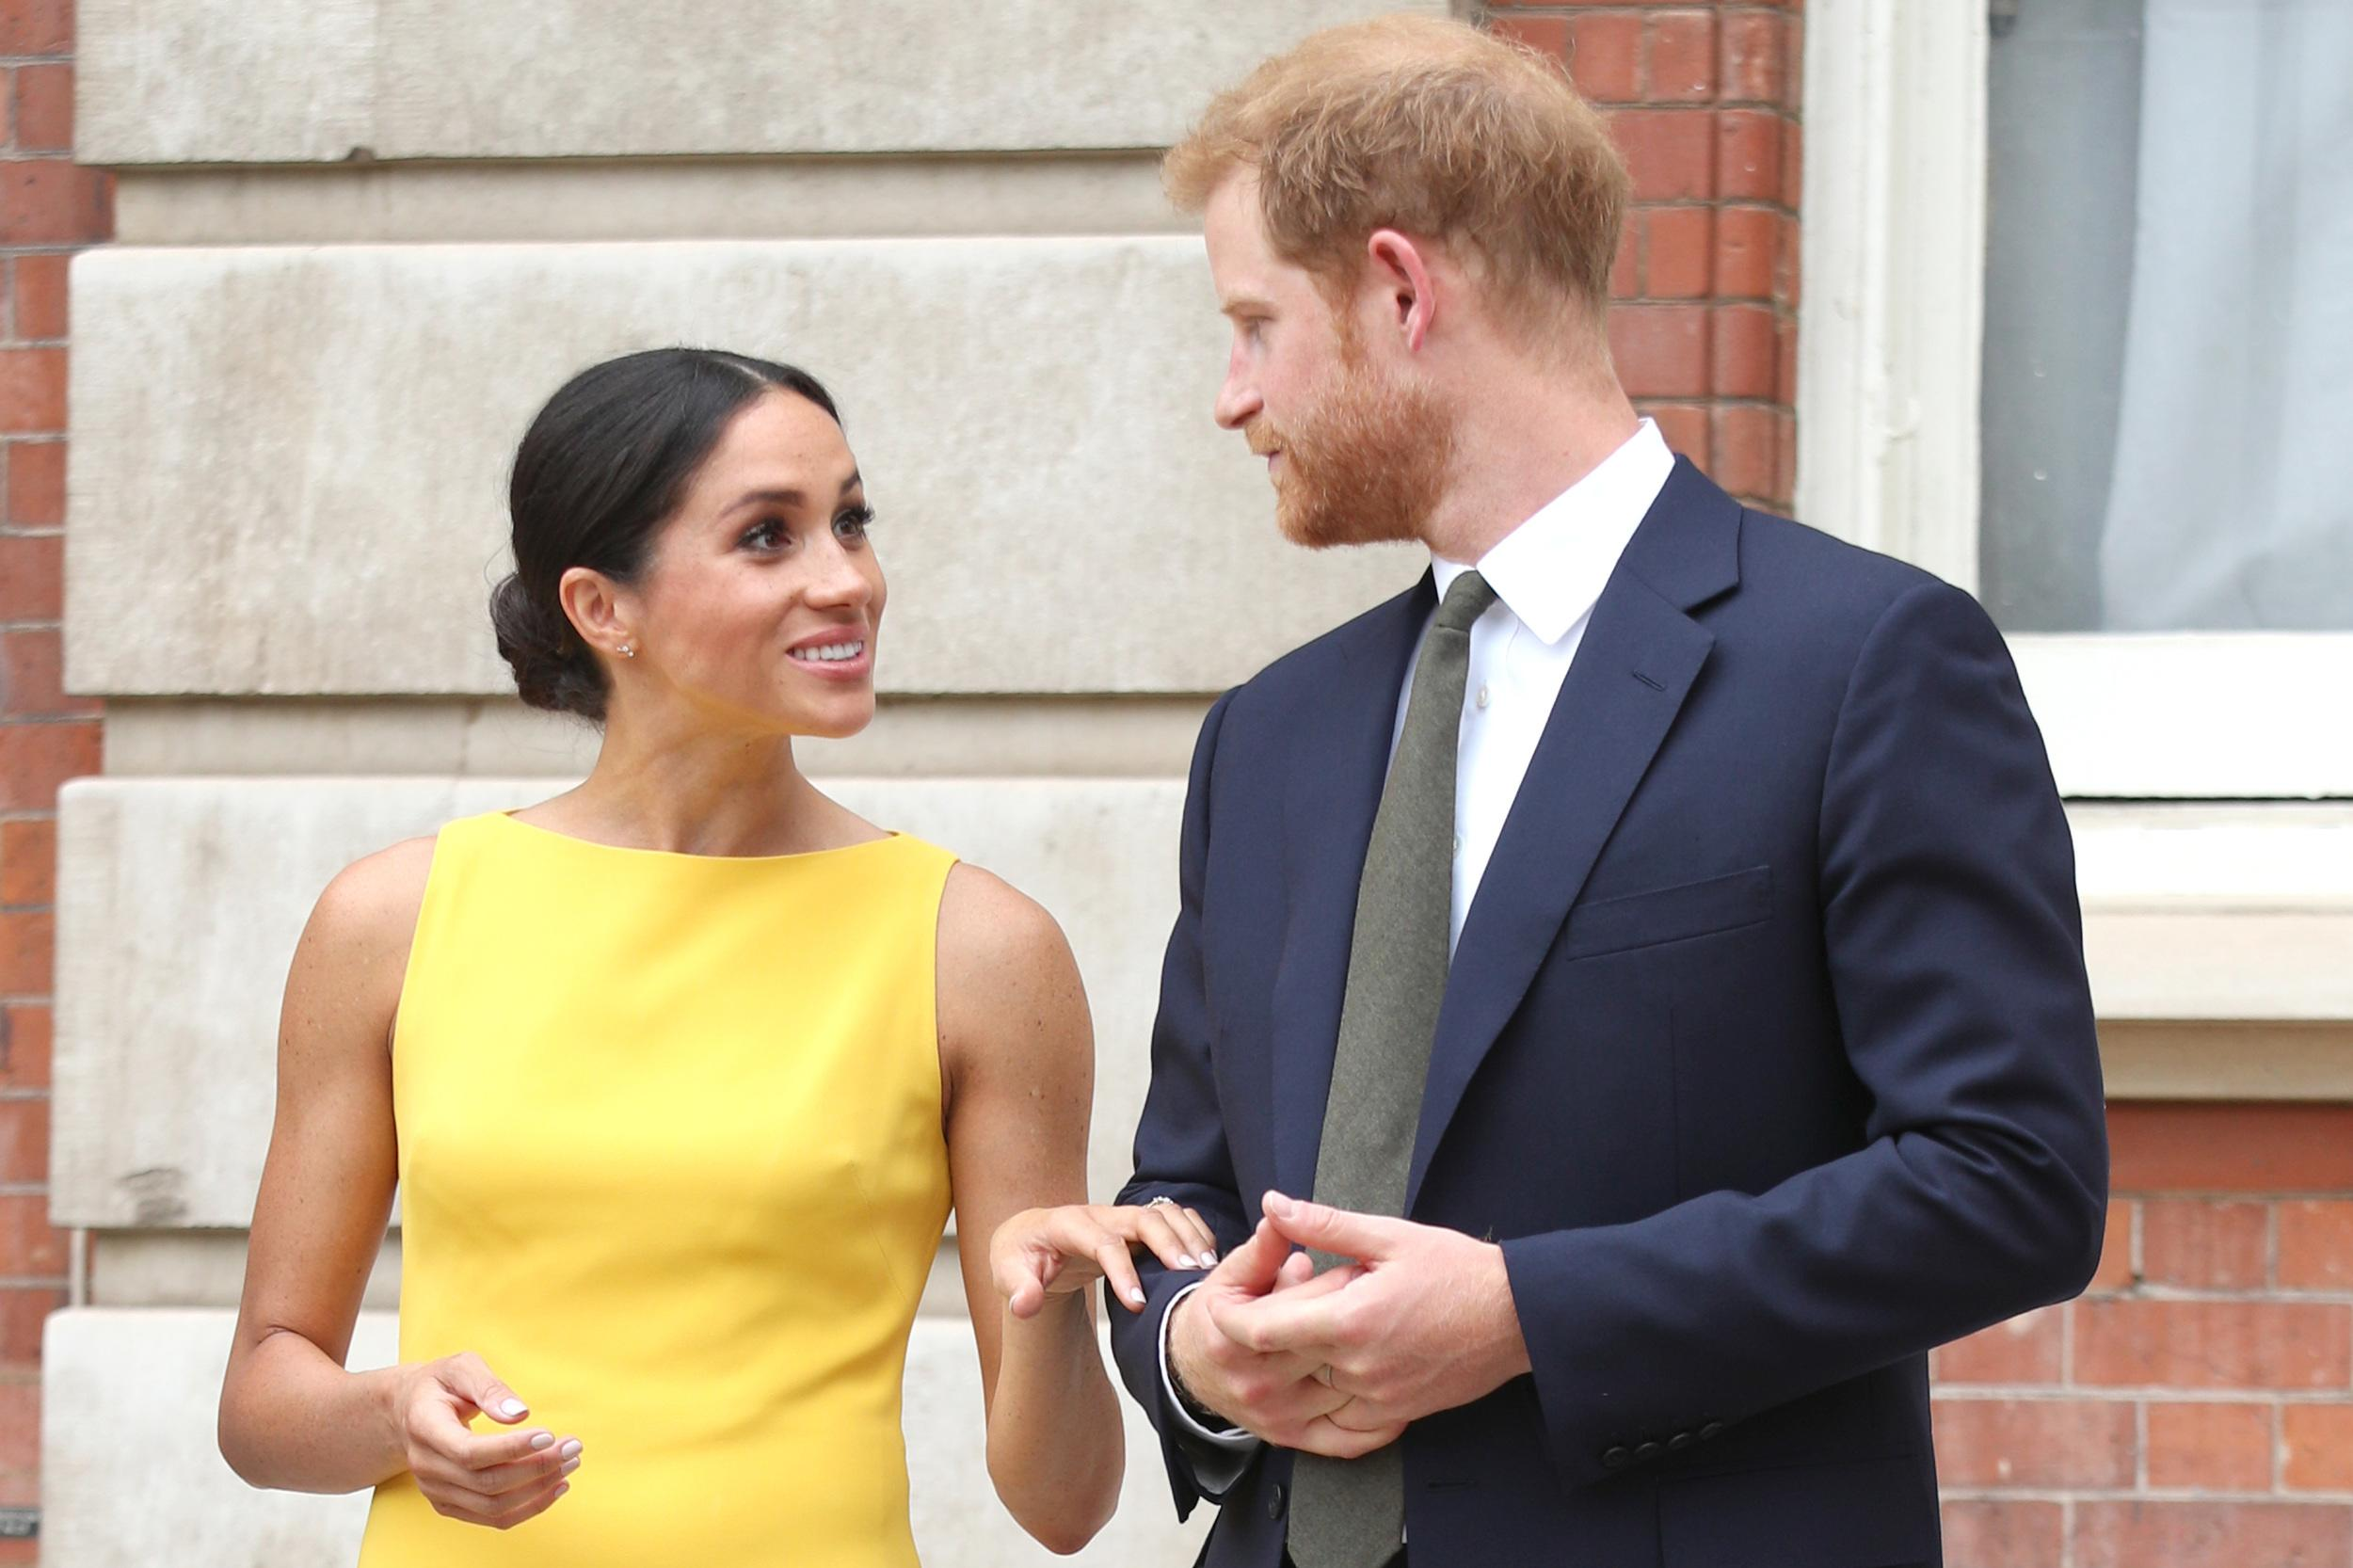 The Duke and Duchess of Sussex arrive to meet youngsters from across the Commonwealth as they attend the Your Commonwealth Youth Challenge reception at Marlborough House in London.